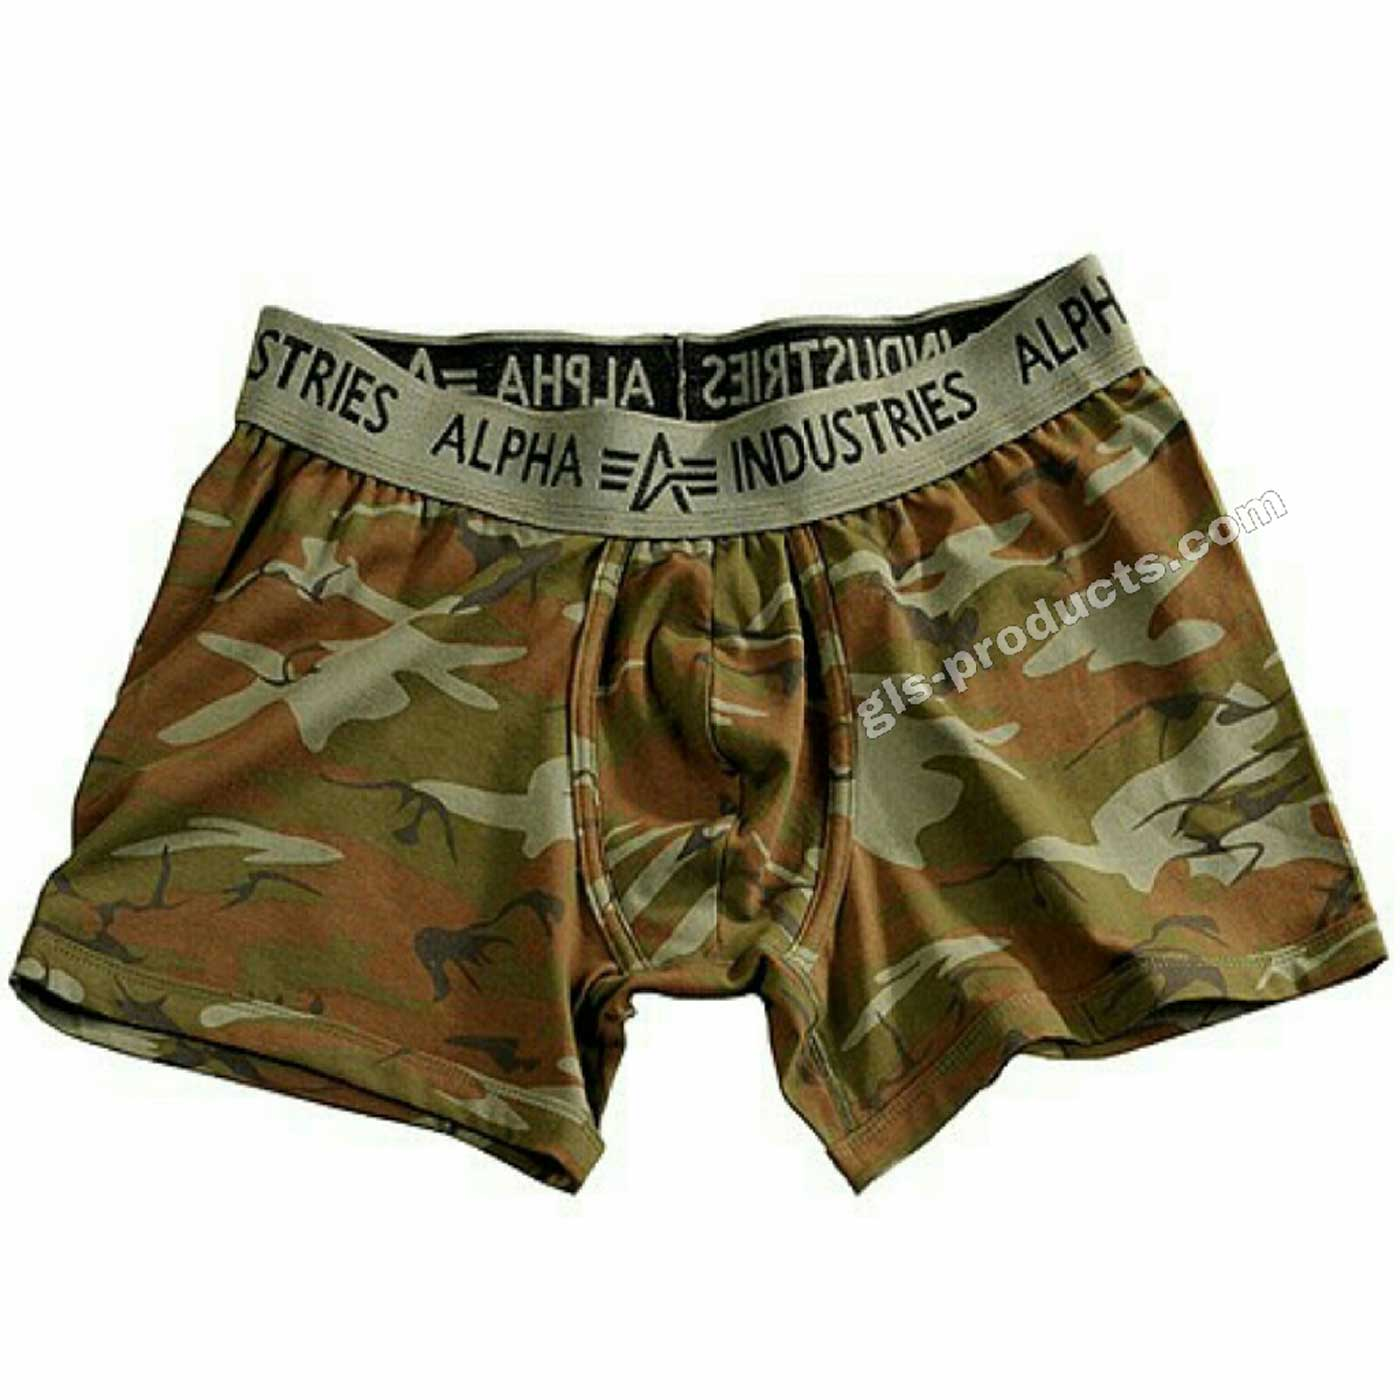 Alpha Industries Bodywear Boxer Shorts 113905 – Picture 1